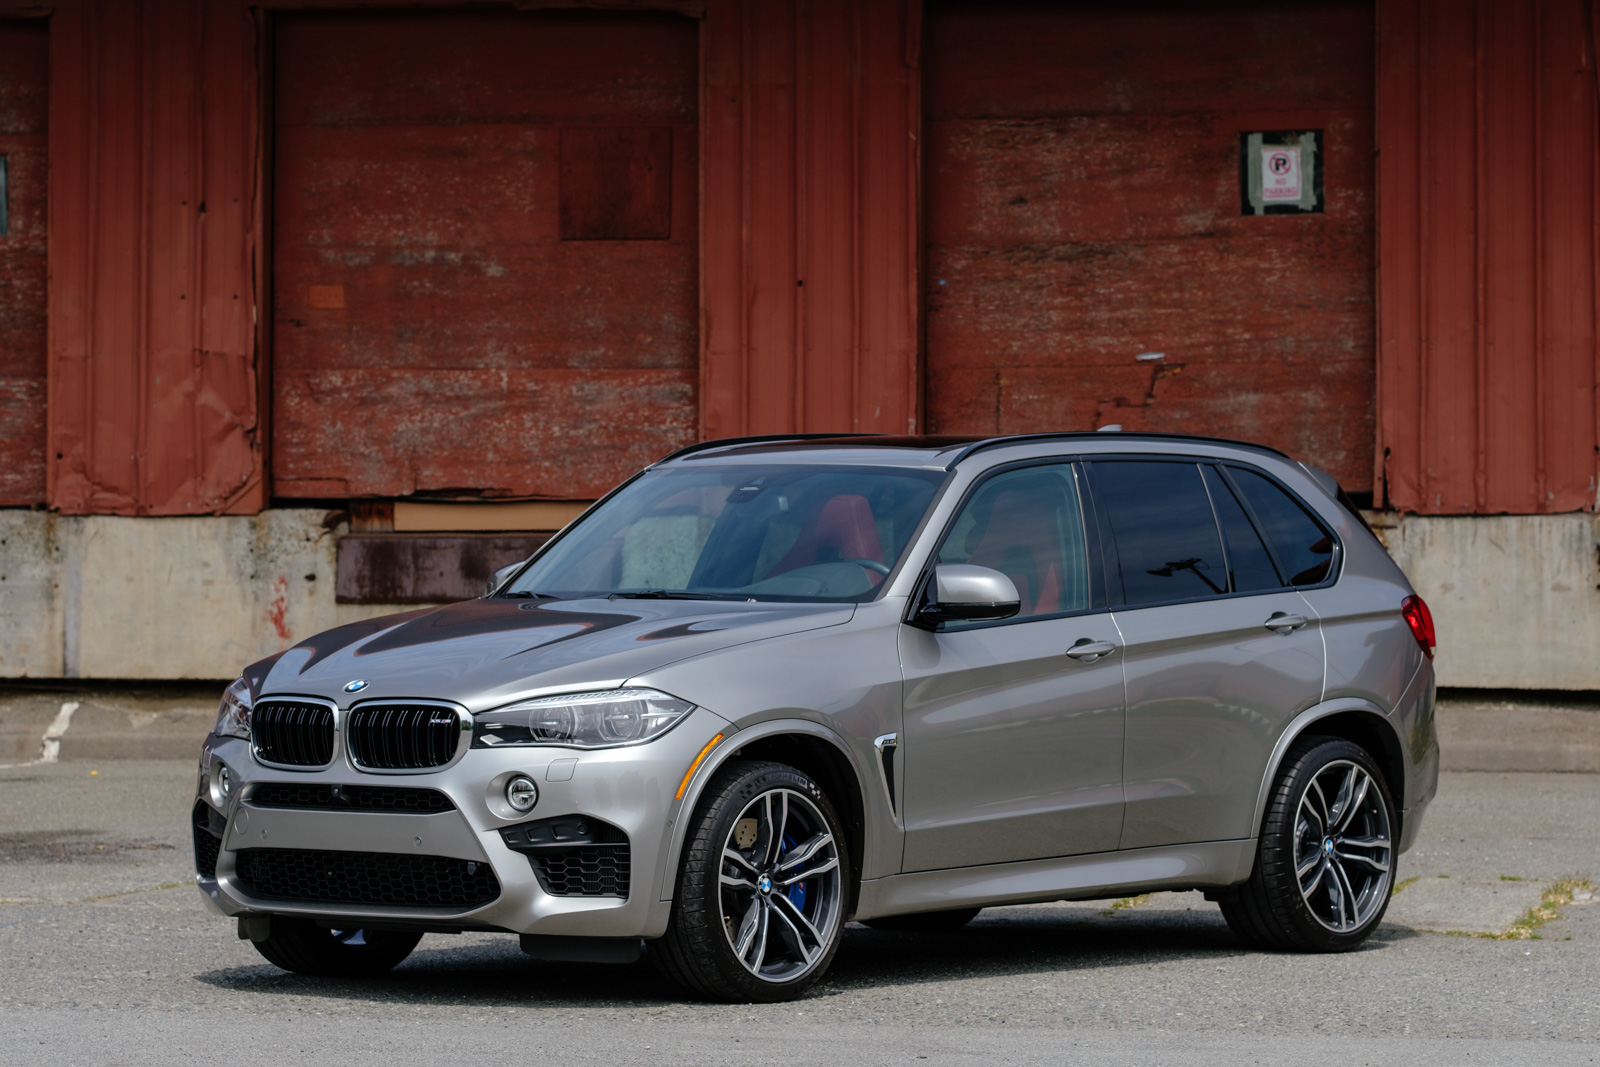 2017 Bmw X5 M For